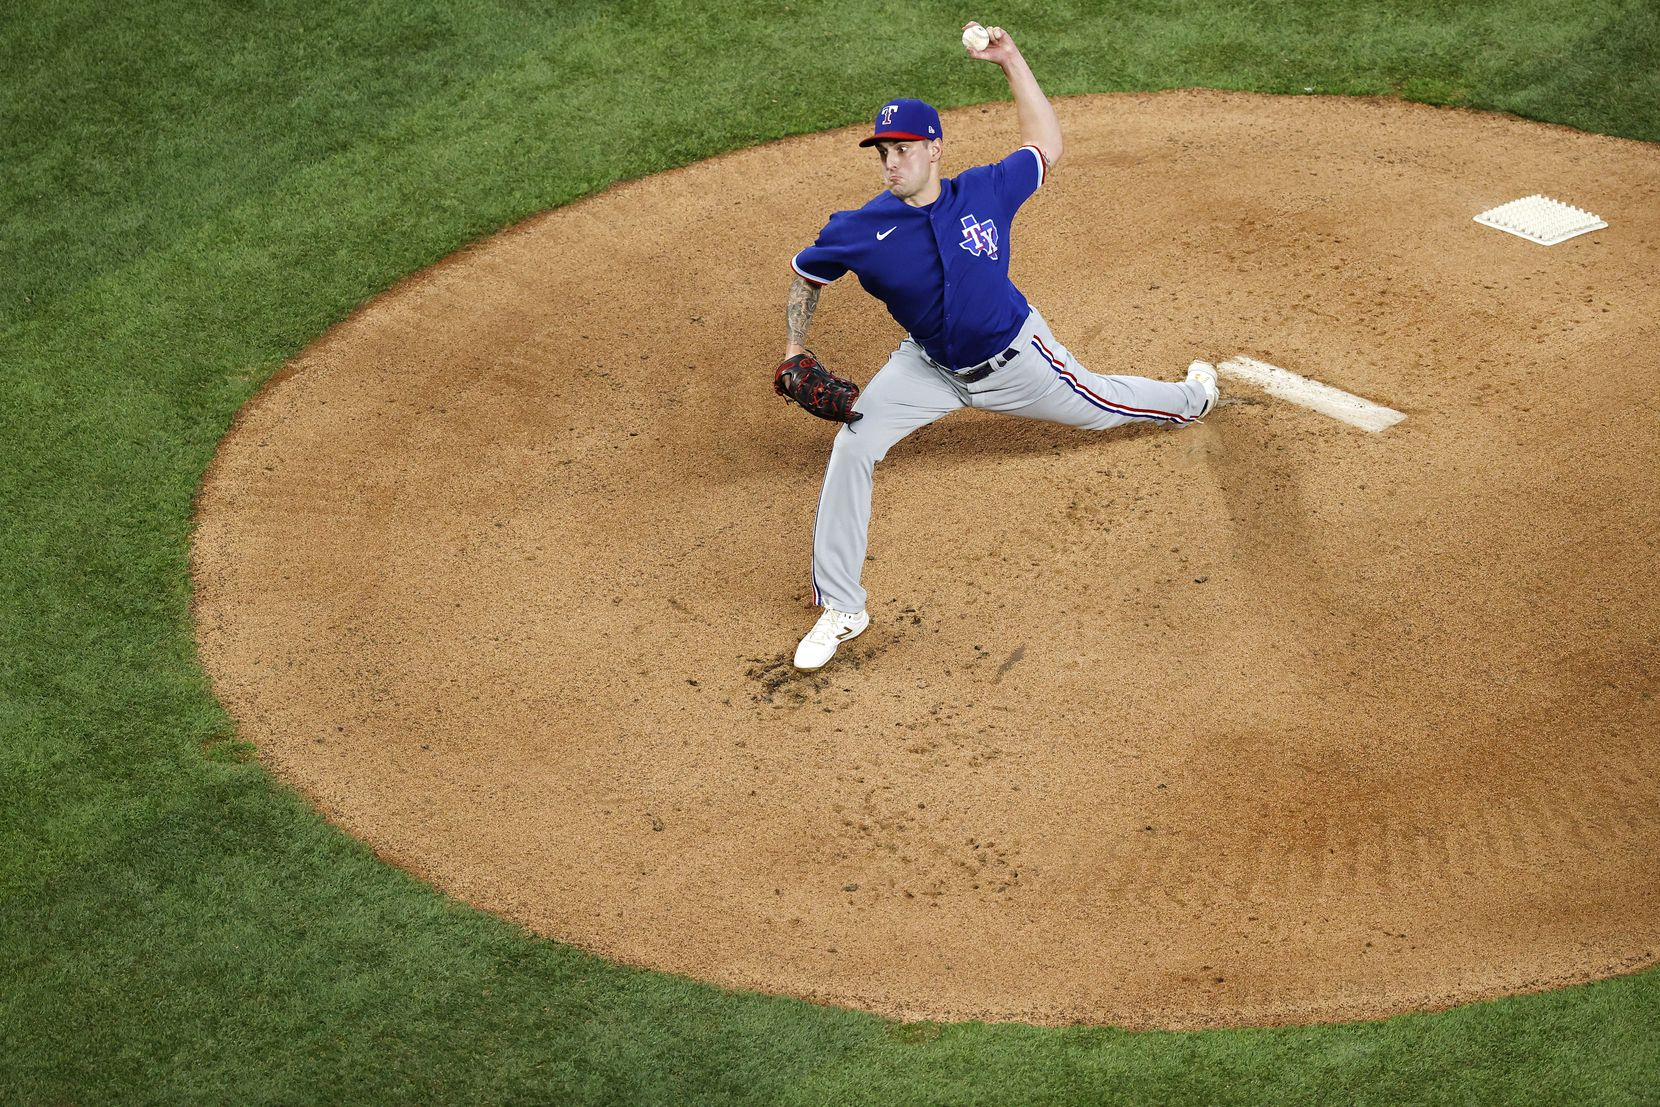 Texas Rangers starting pitcher Joe Palumbo throws during an intrasquad game at Summer Camp inside Globe Life Field in Arlington, Texas, Friday, July 10, 2020. (Tom Fox/The Dallas Morning News)